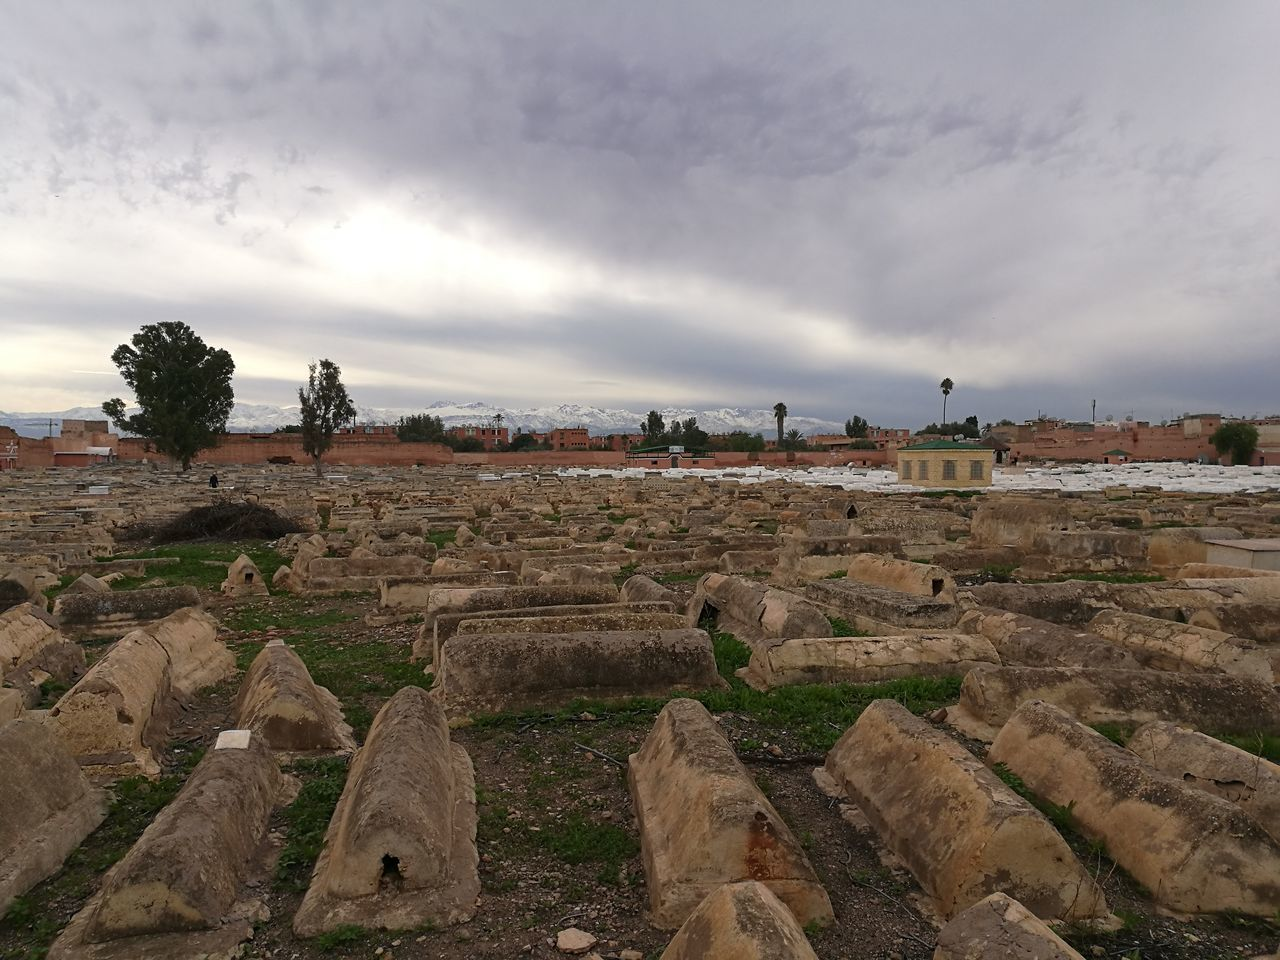 Jewish cemetery in Marrakech Ancient Cemetery Grave Gravestone Israel Jewish Judaism Medina Morocco Old Tombs Tombstones